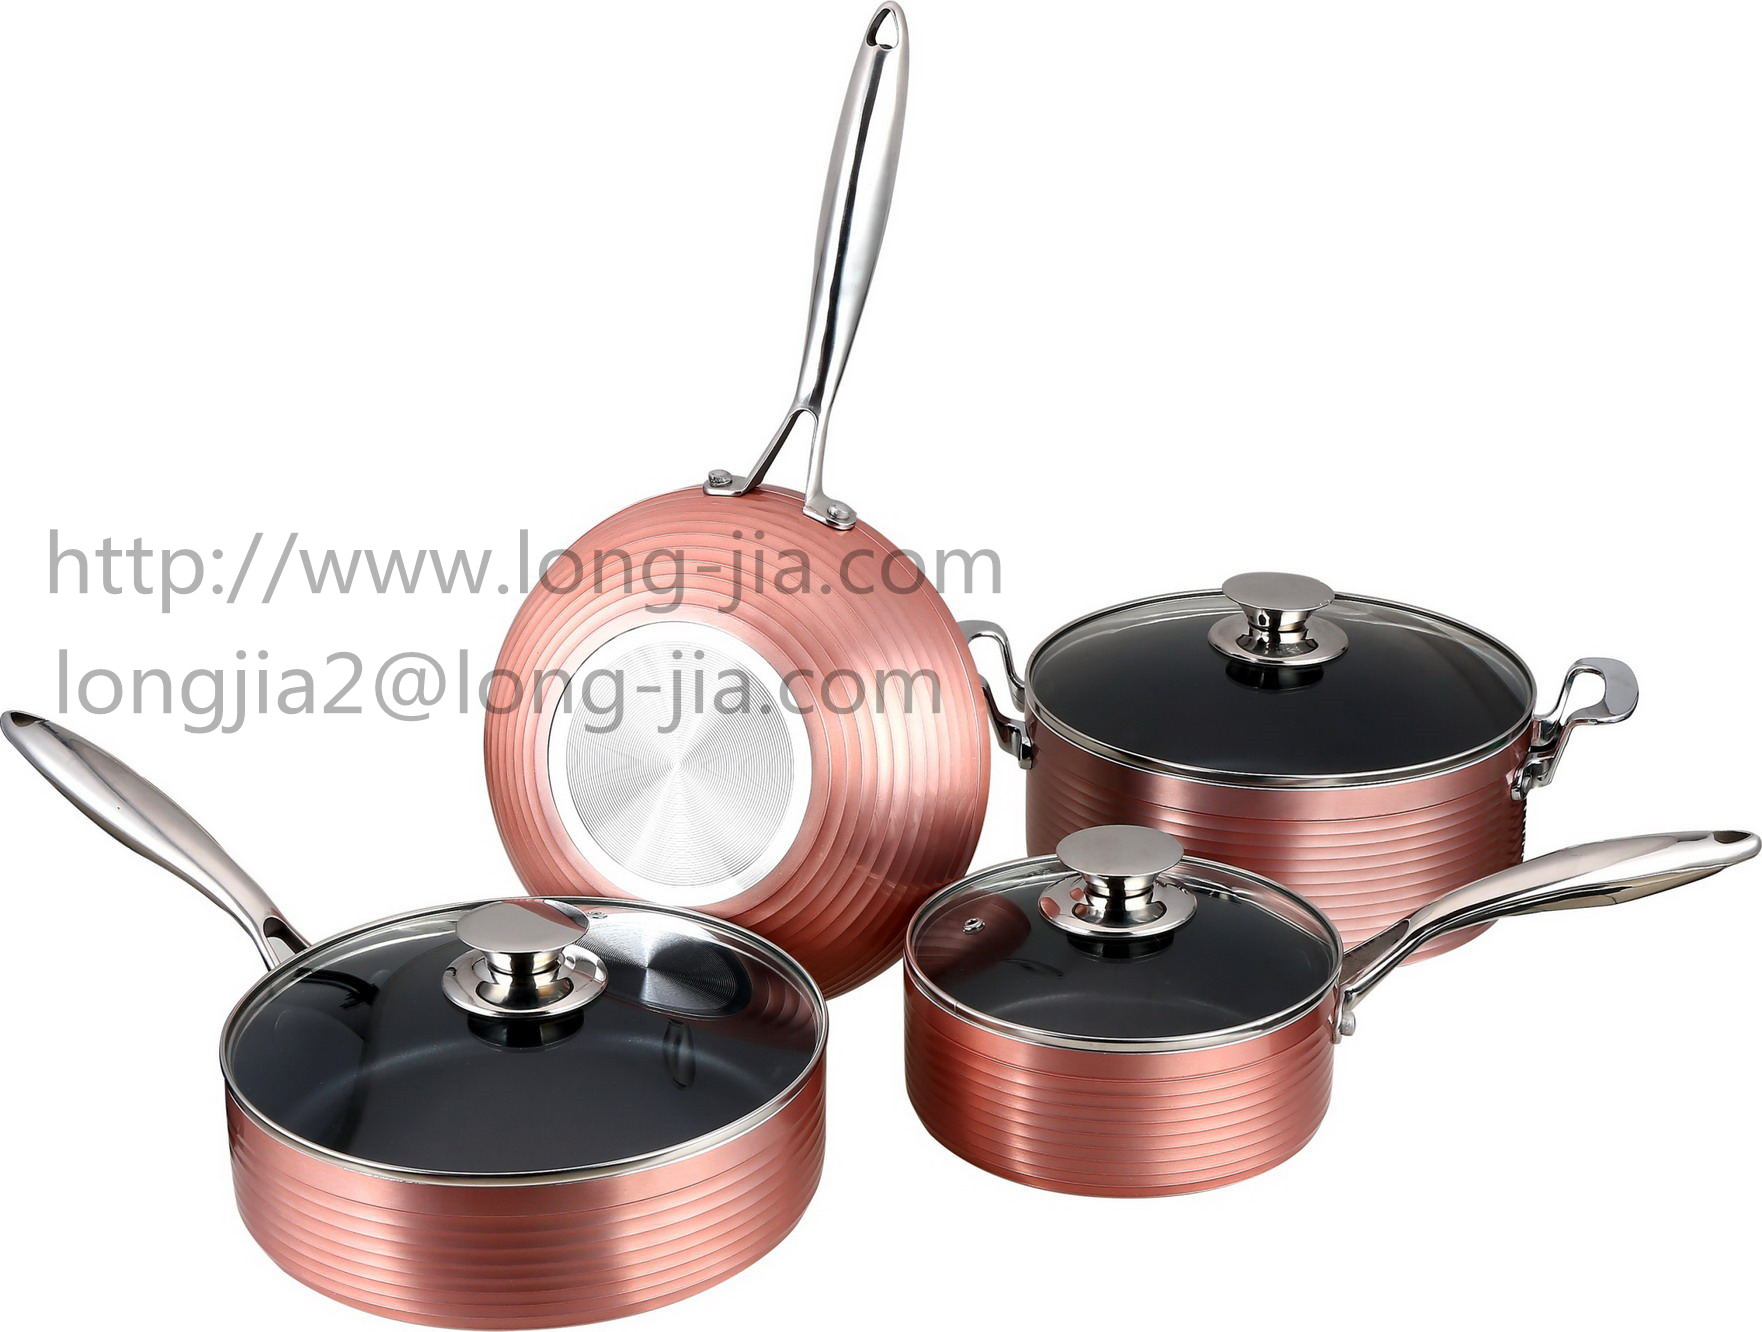 LJ Forge Aluminum non-stick cookware set frying pan -Factory